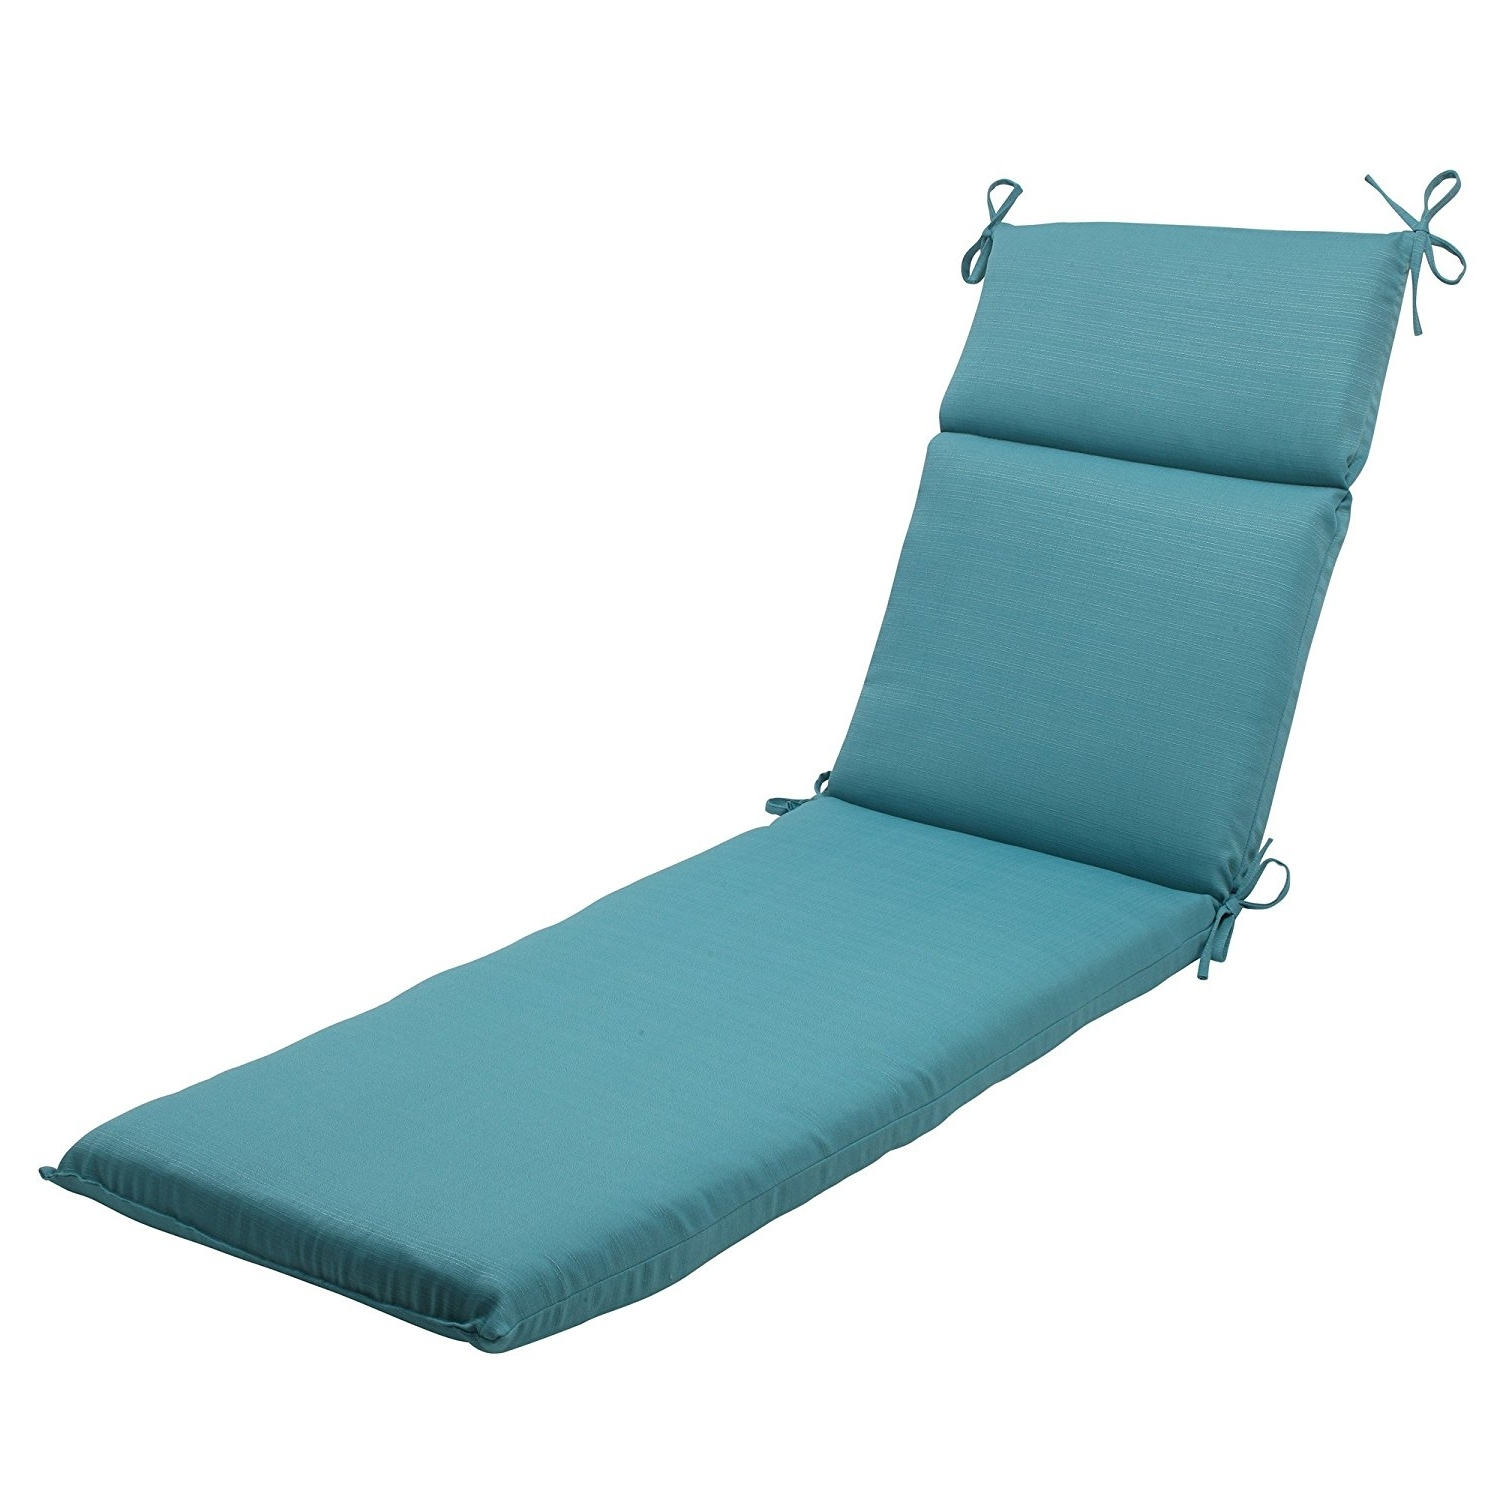 Amazon: Pillow Perfect Indoor/outdoor Forsyth Chaise Lounge Inside Recent Chaise Lounge Outdoor Cushions (View 1 of 15)